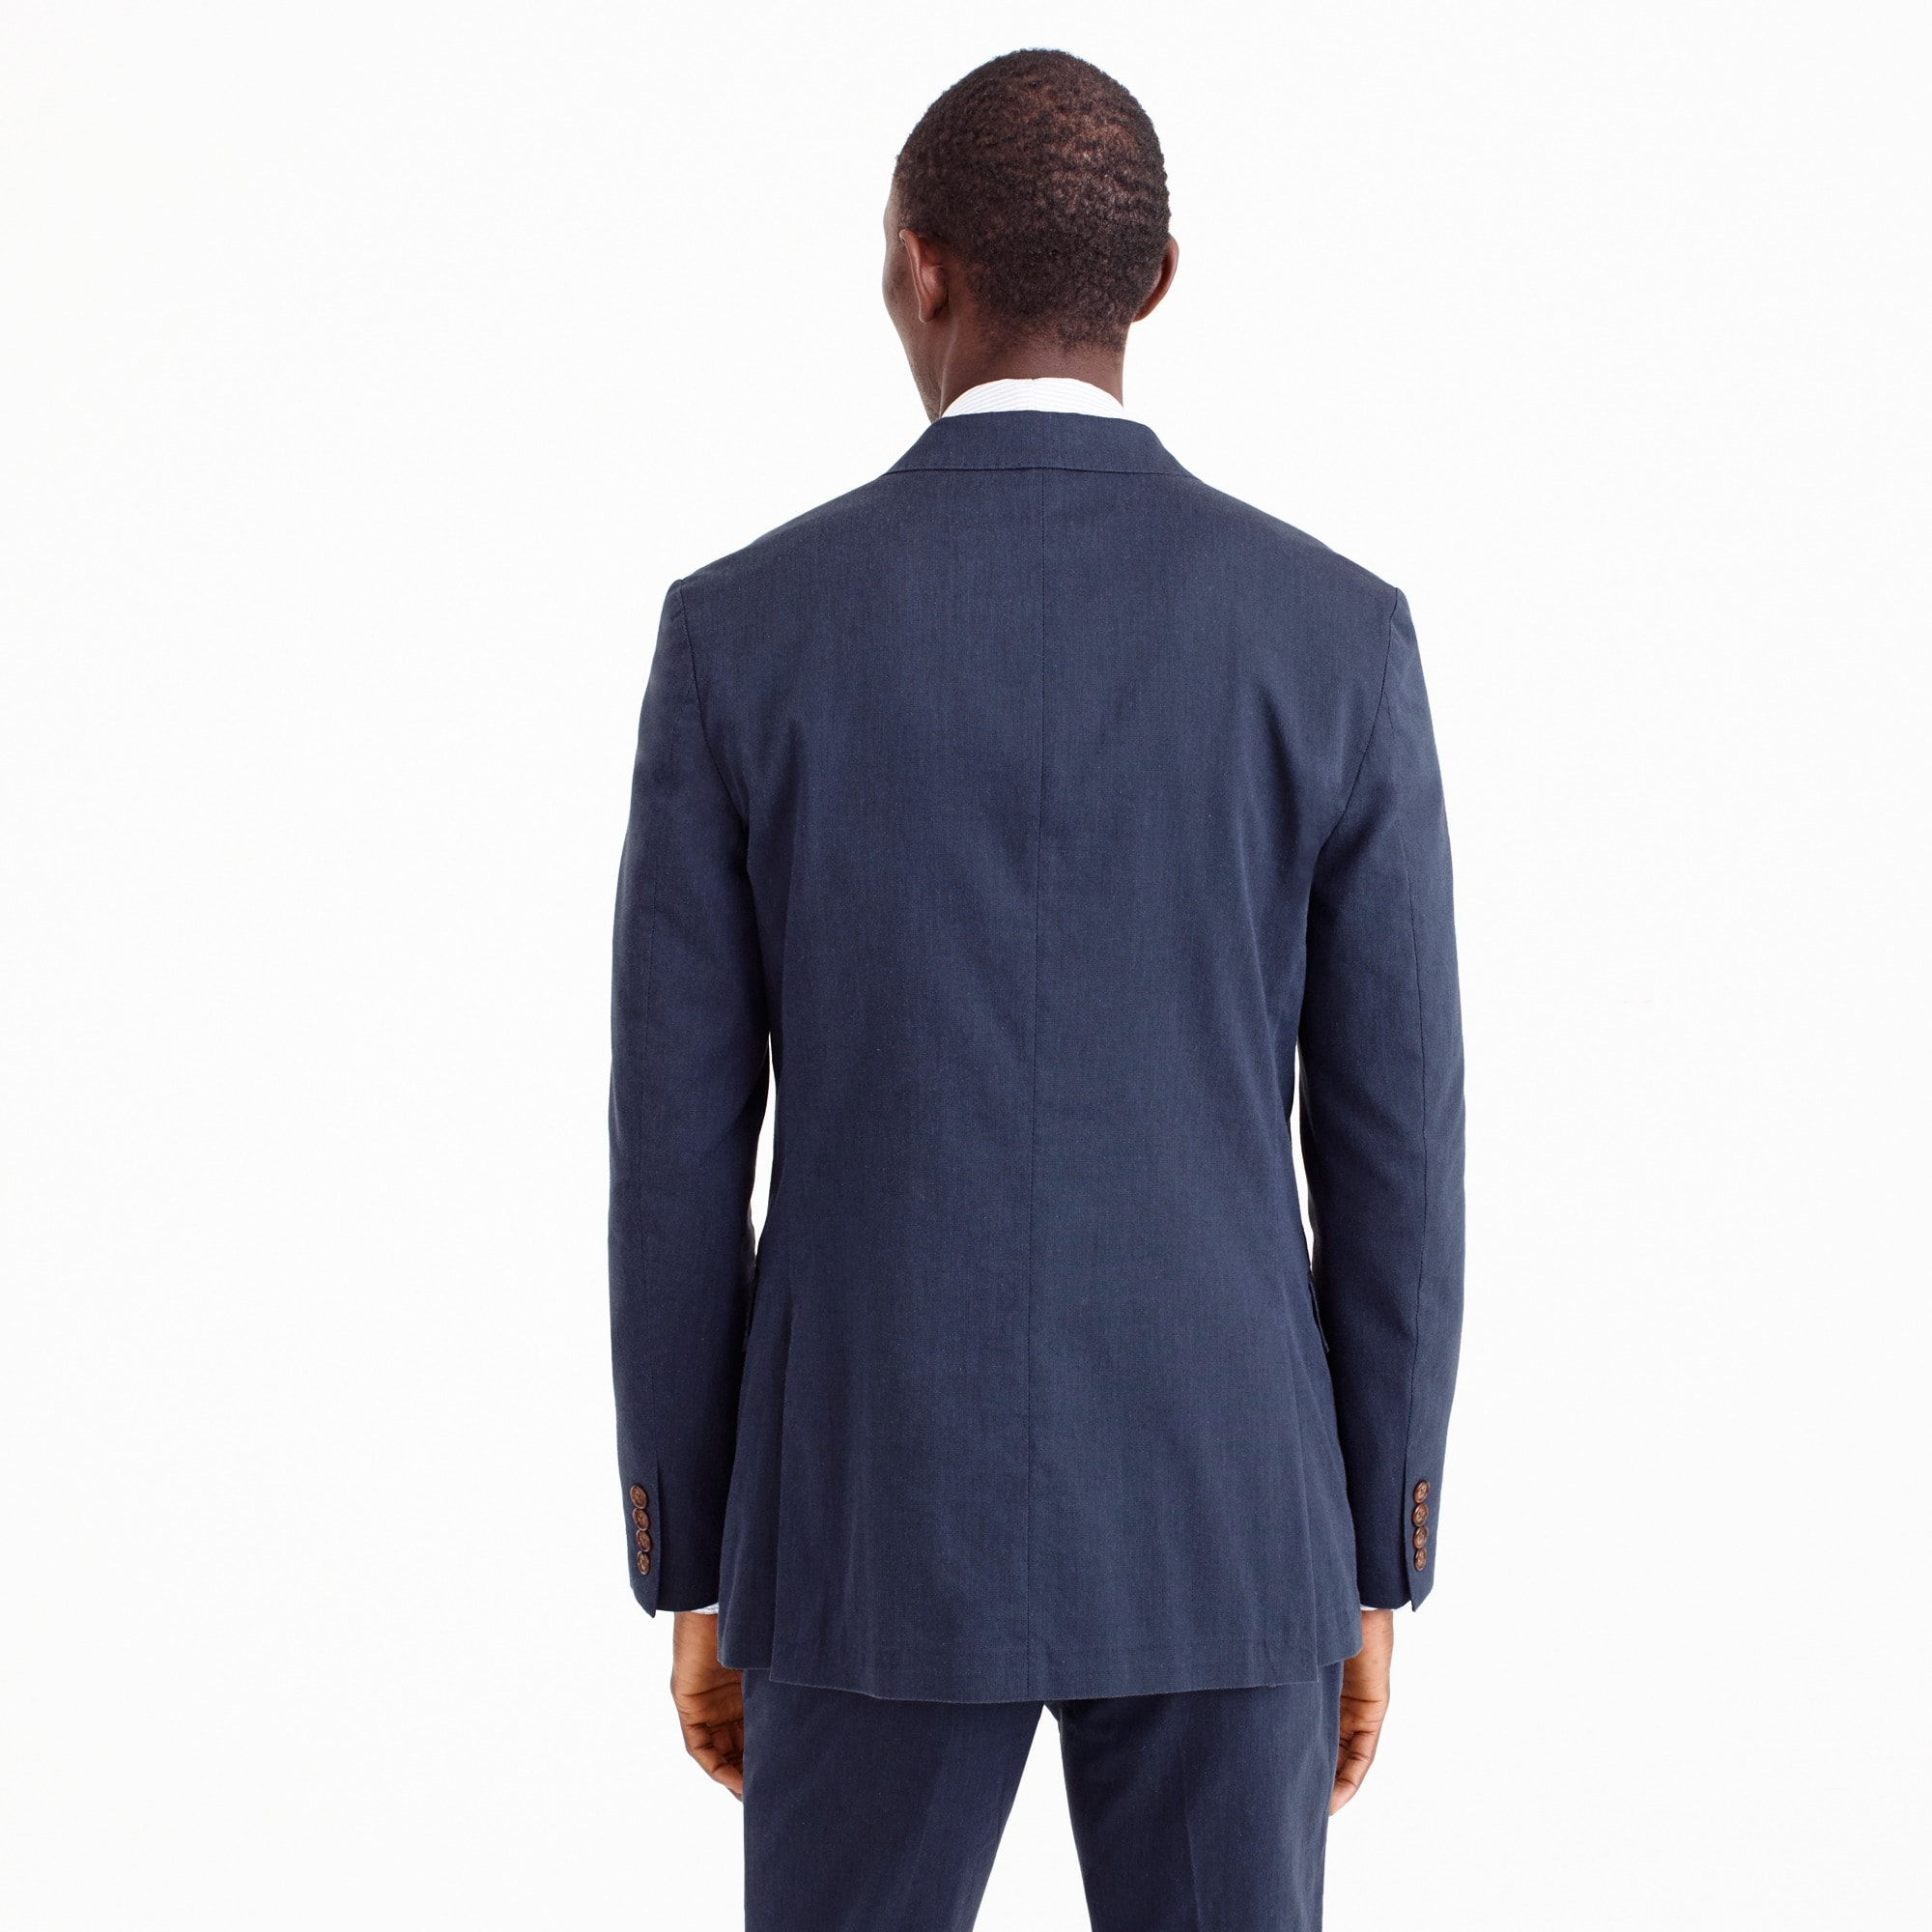 Image 4 for Ludlow Slim-fit unstructured suit jacket in stretch cotton